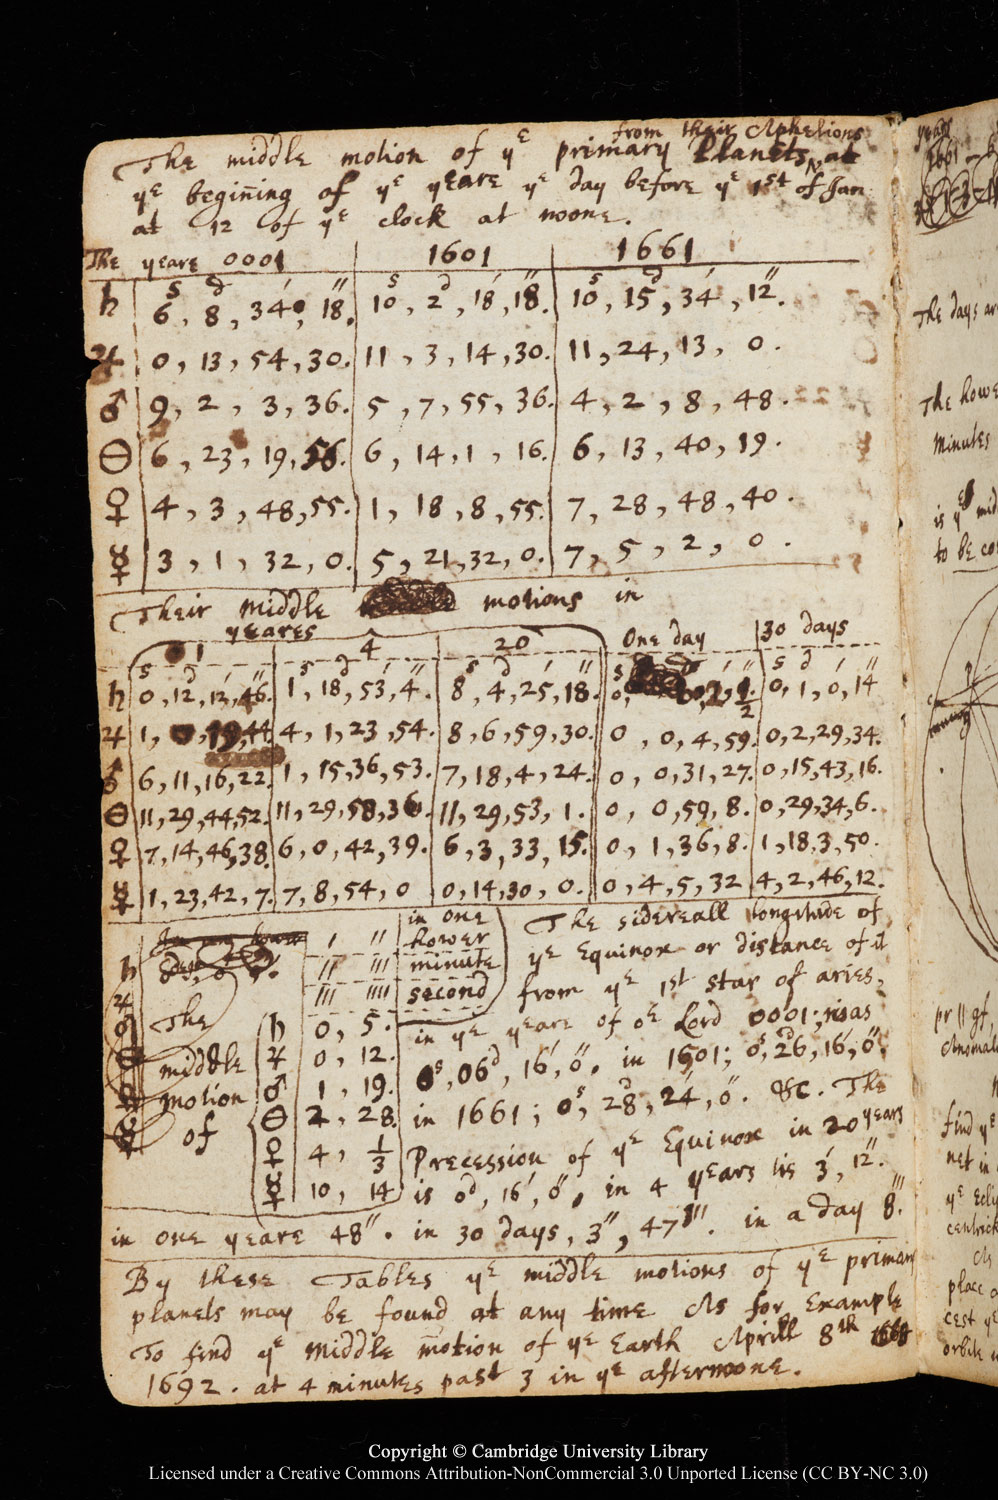 One of the items in cambridge university s digital library is a notebook that belonged to isaac newton when he was an undergraduate at trinity college